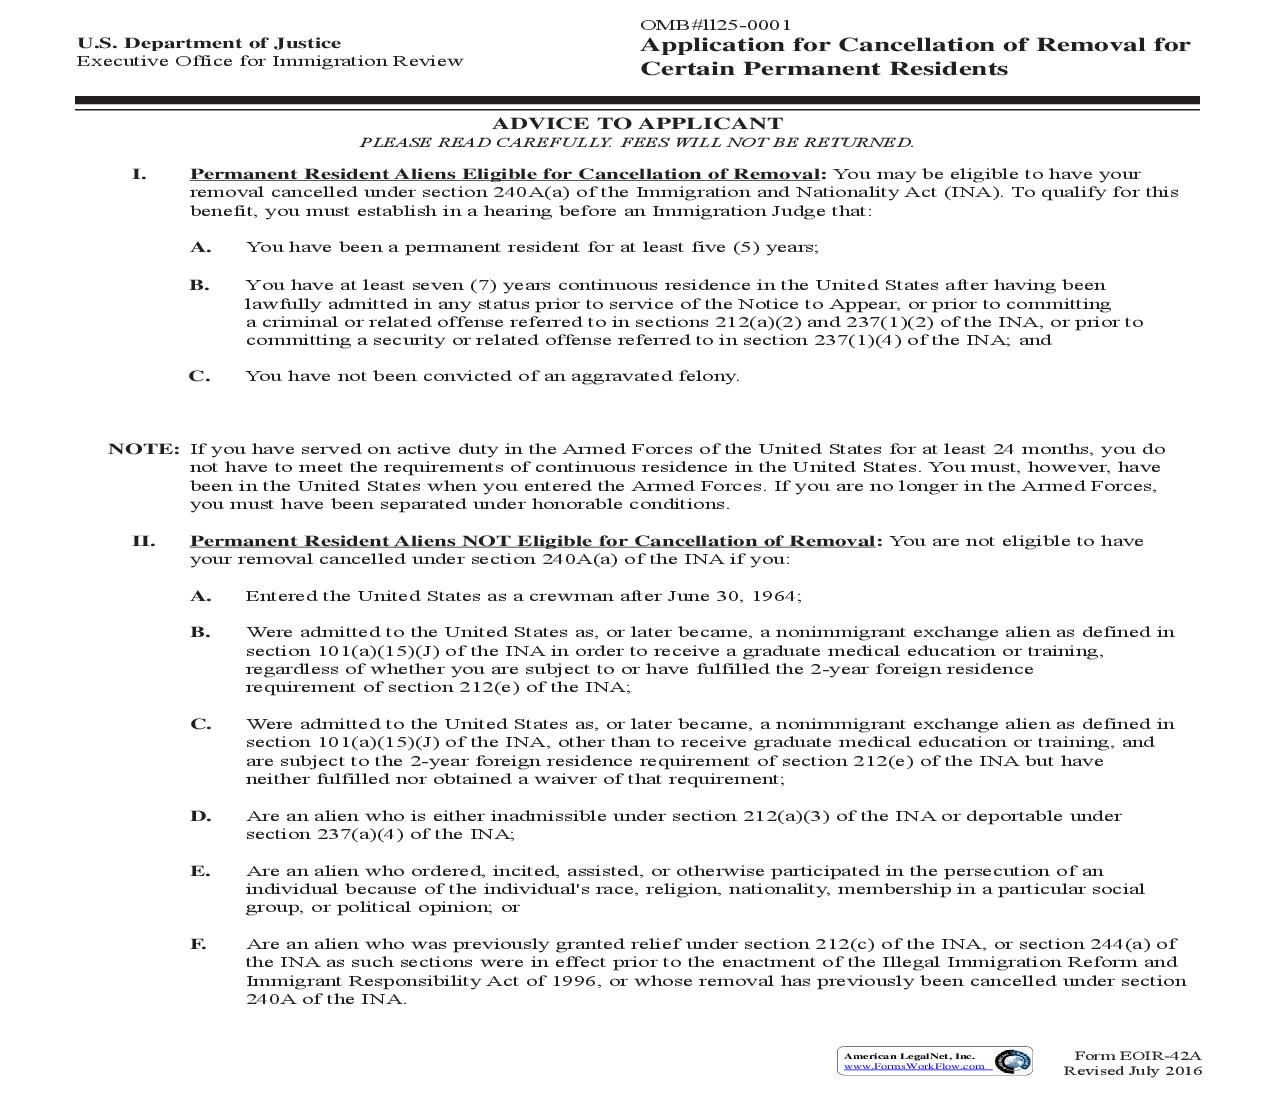 Application For Cancellation Of Removal For Certain Permanent Residents {EOIR-42A}   Pdf Fpdf Doc Docx   Official Federal Forms